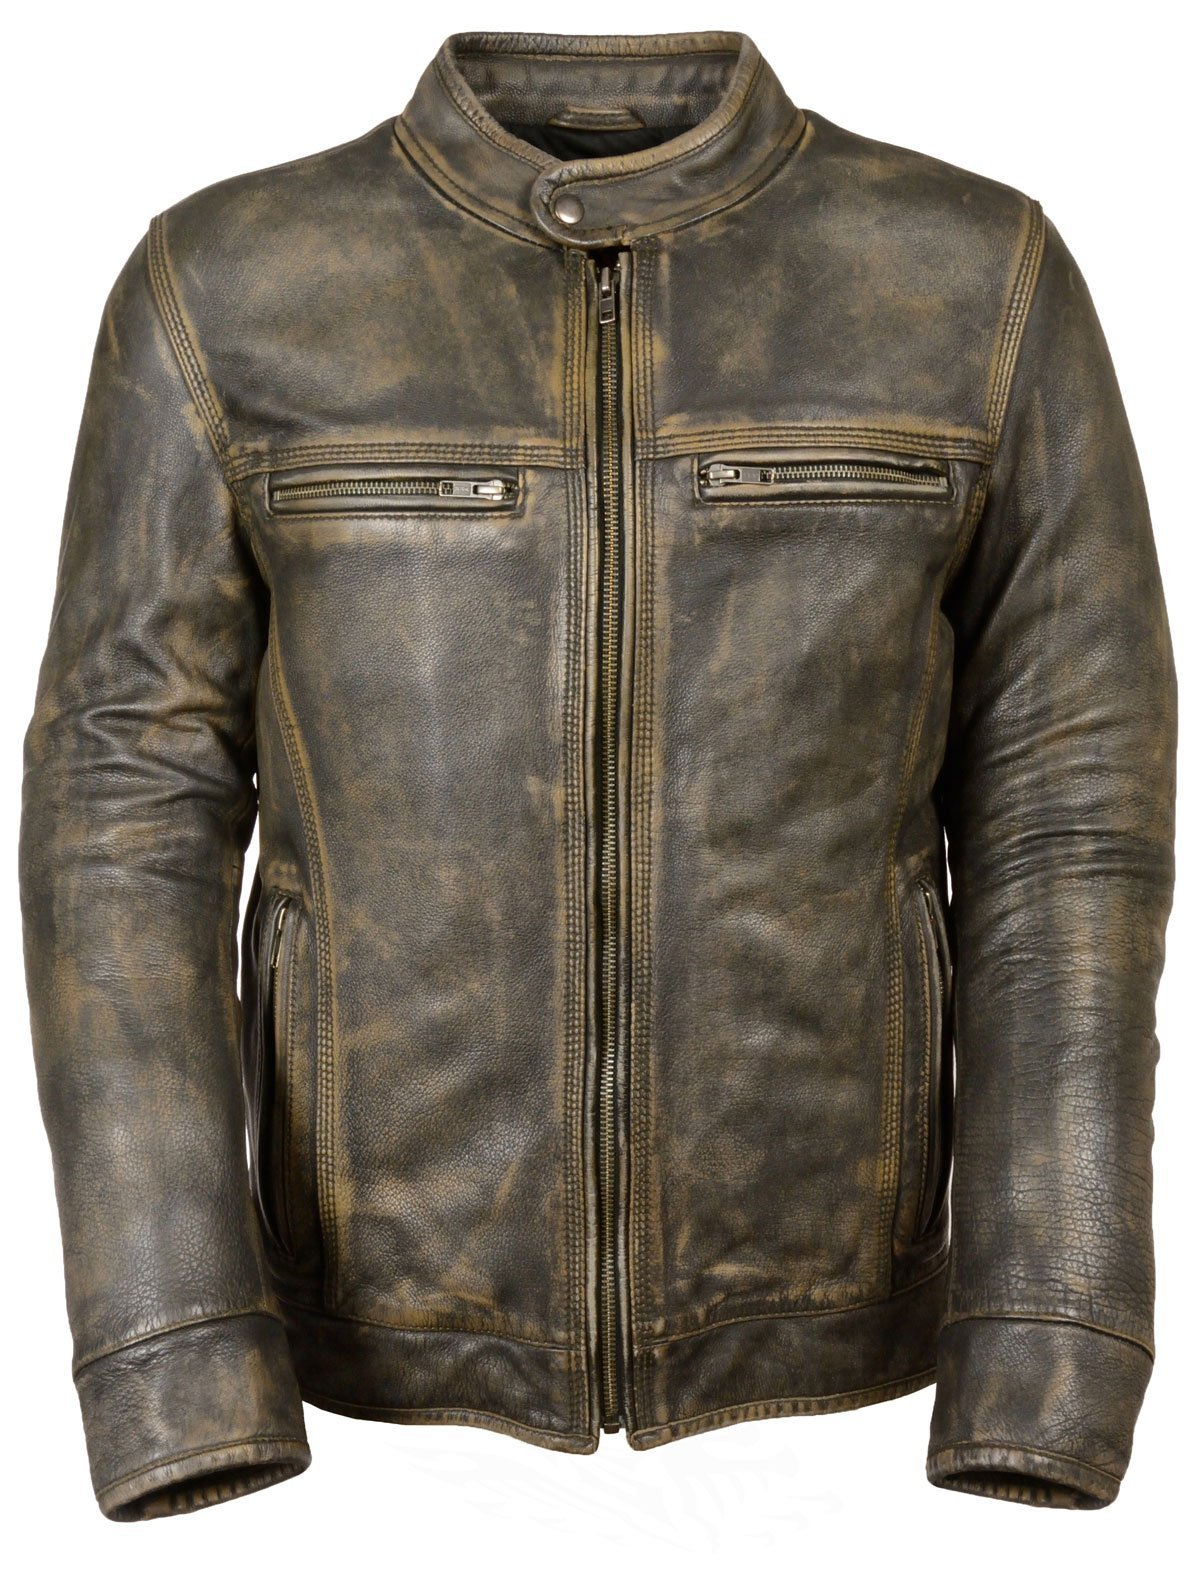 MENS DISTRESSED BROWN MOTORCYCLE JACKET-AIR VENTS